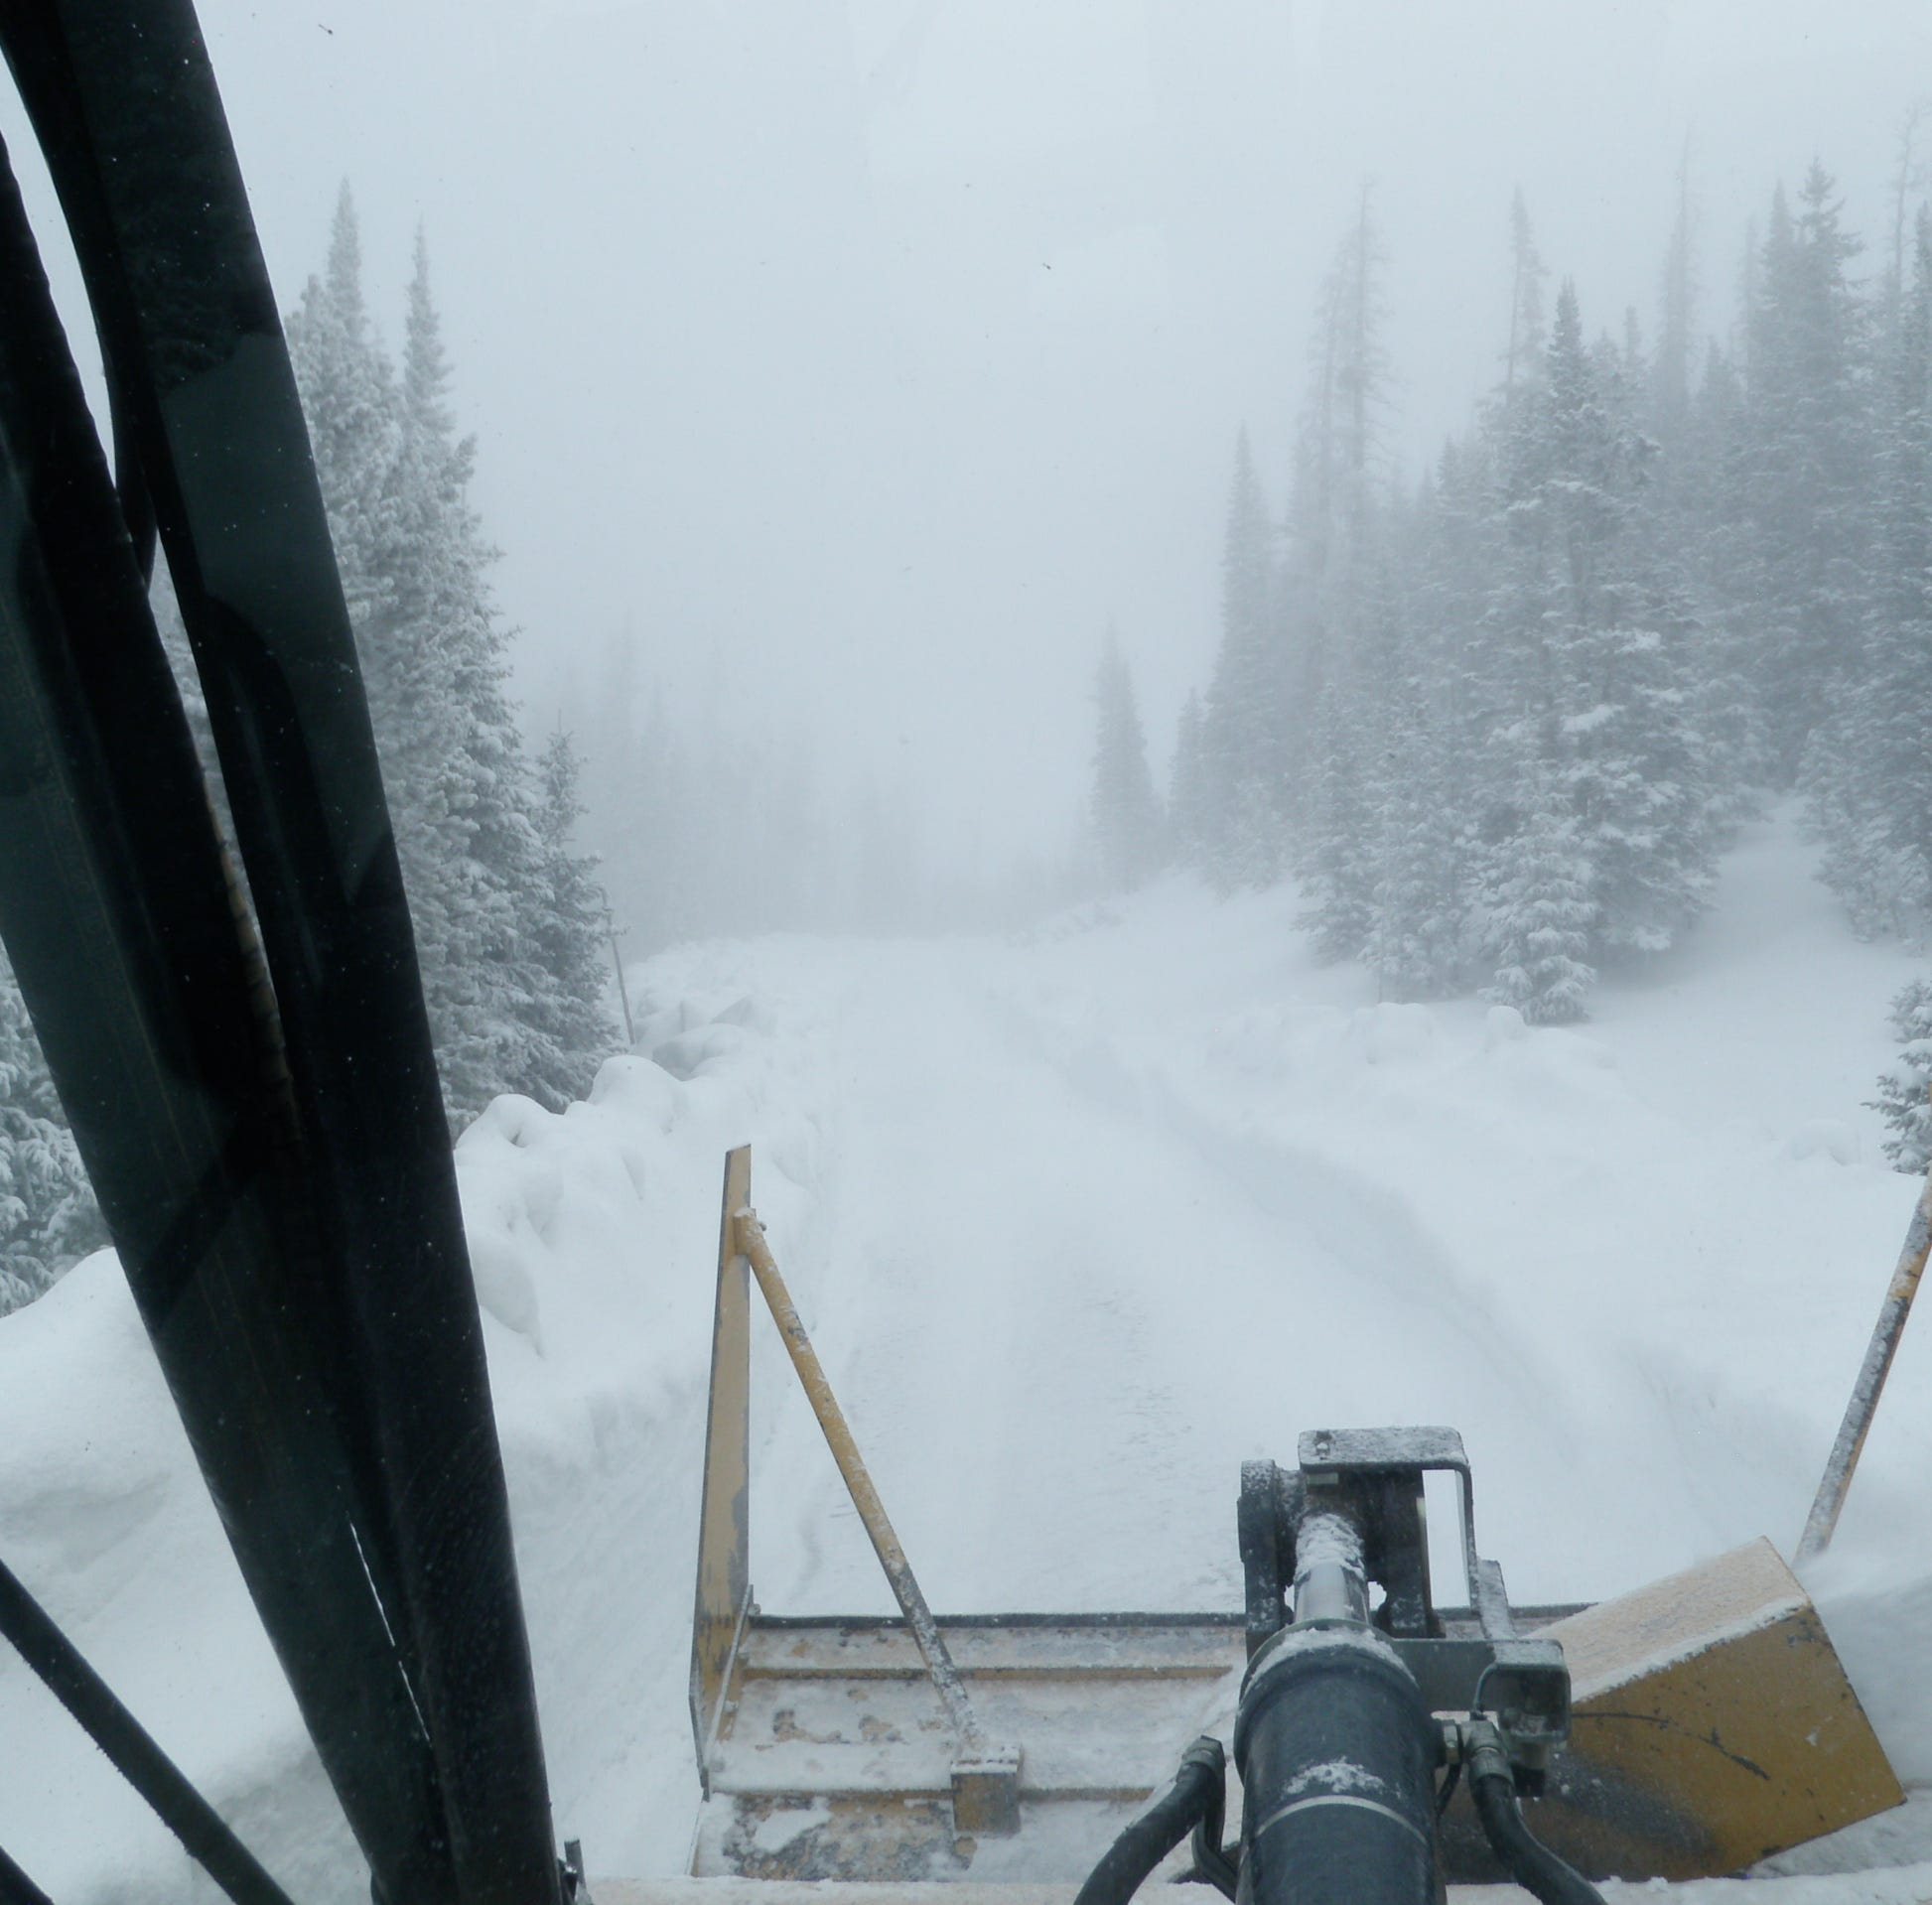 Snow delays Rocky Mountain National Park from opening Trail Ridge Road